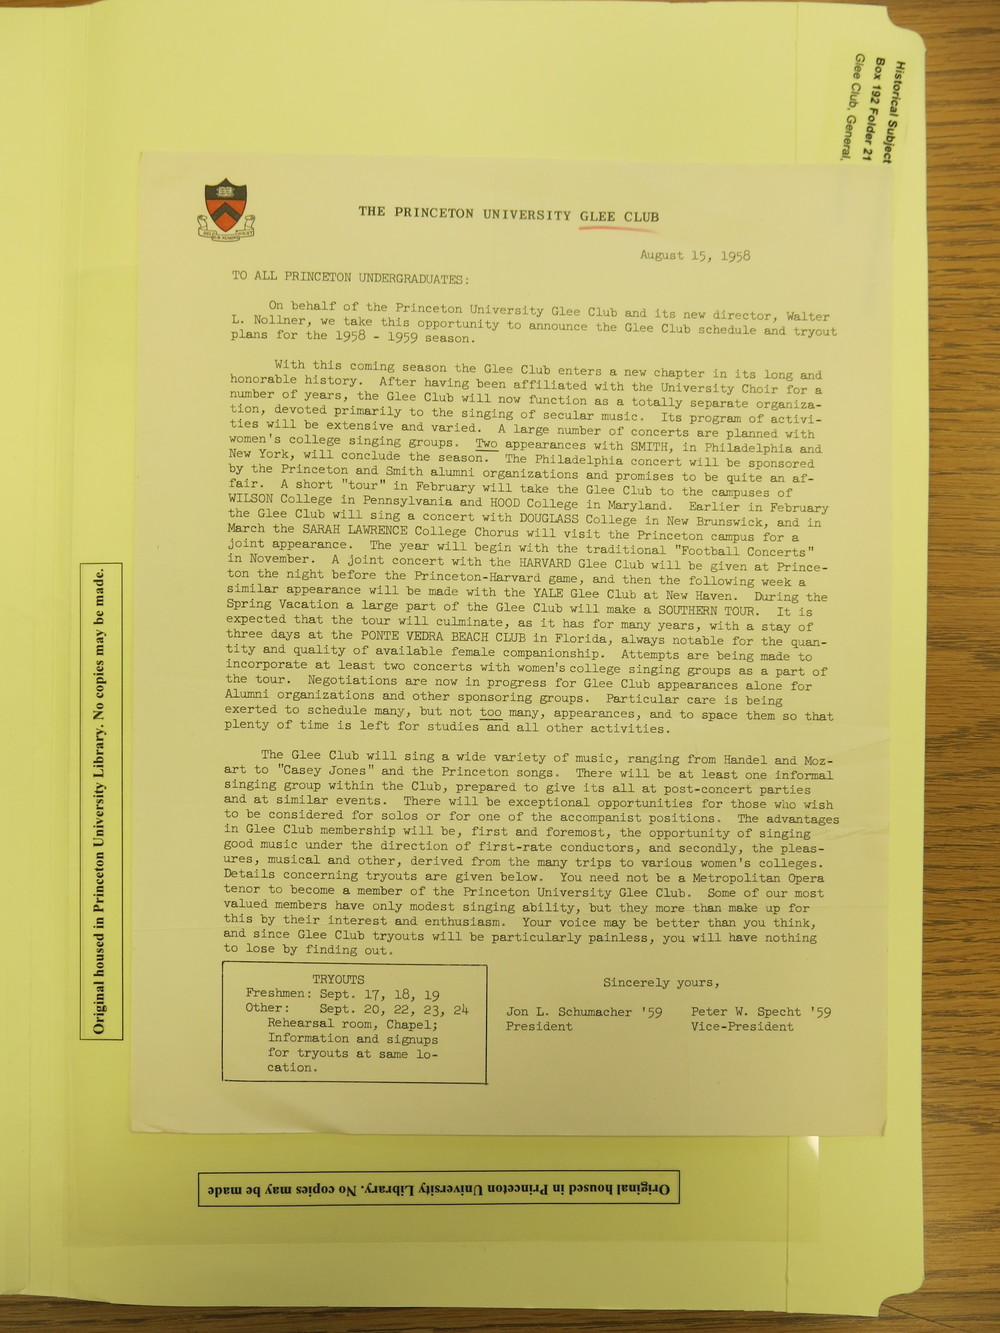 A letter from 1958 announcing a few landmark changes in the Glee Club's function and programming.